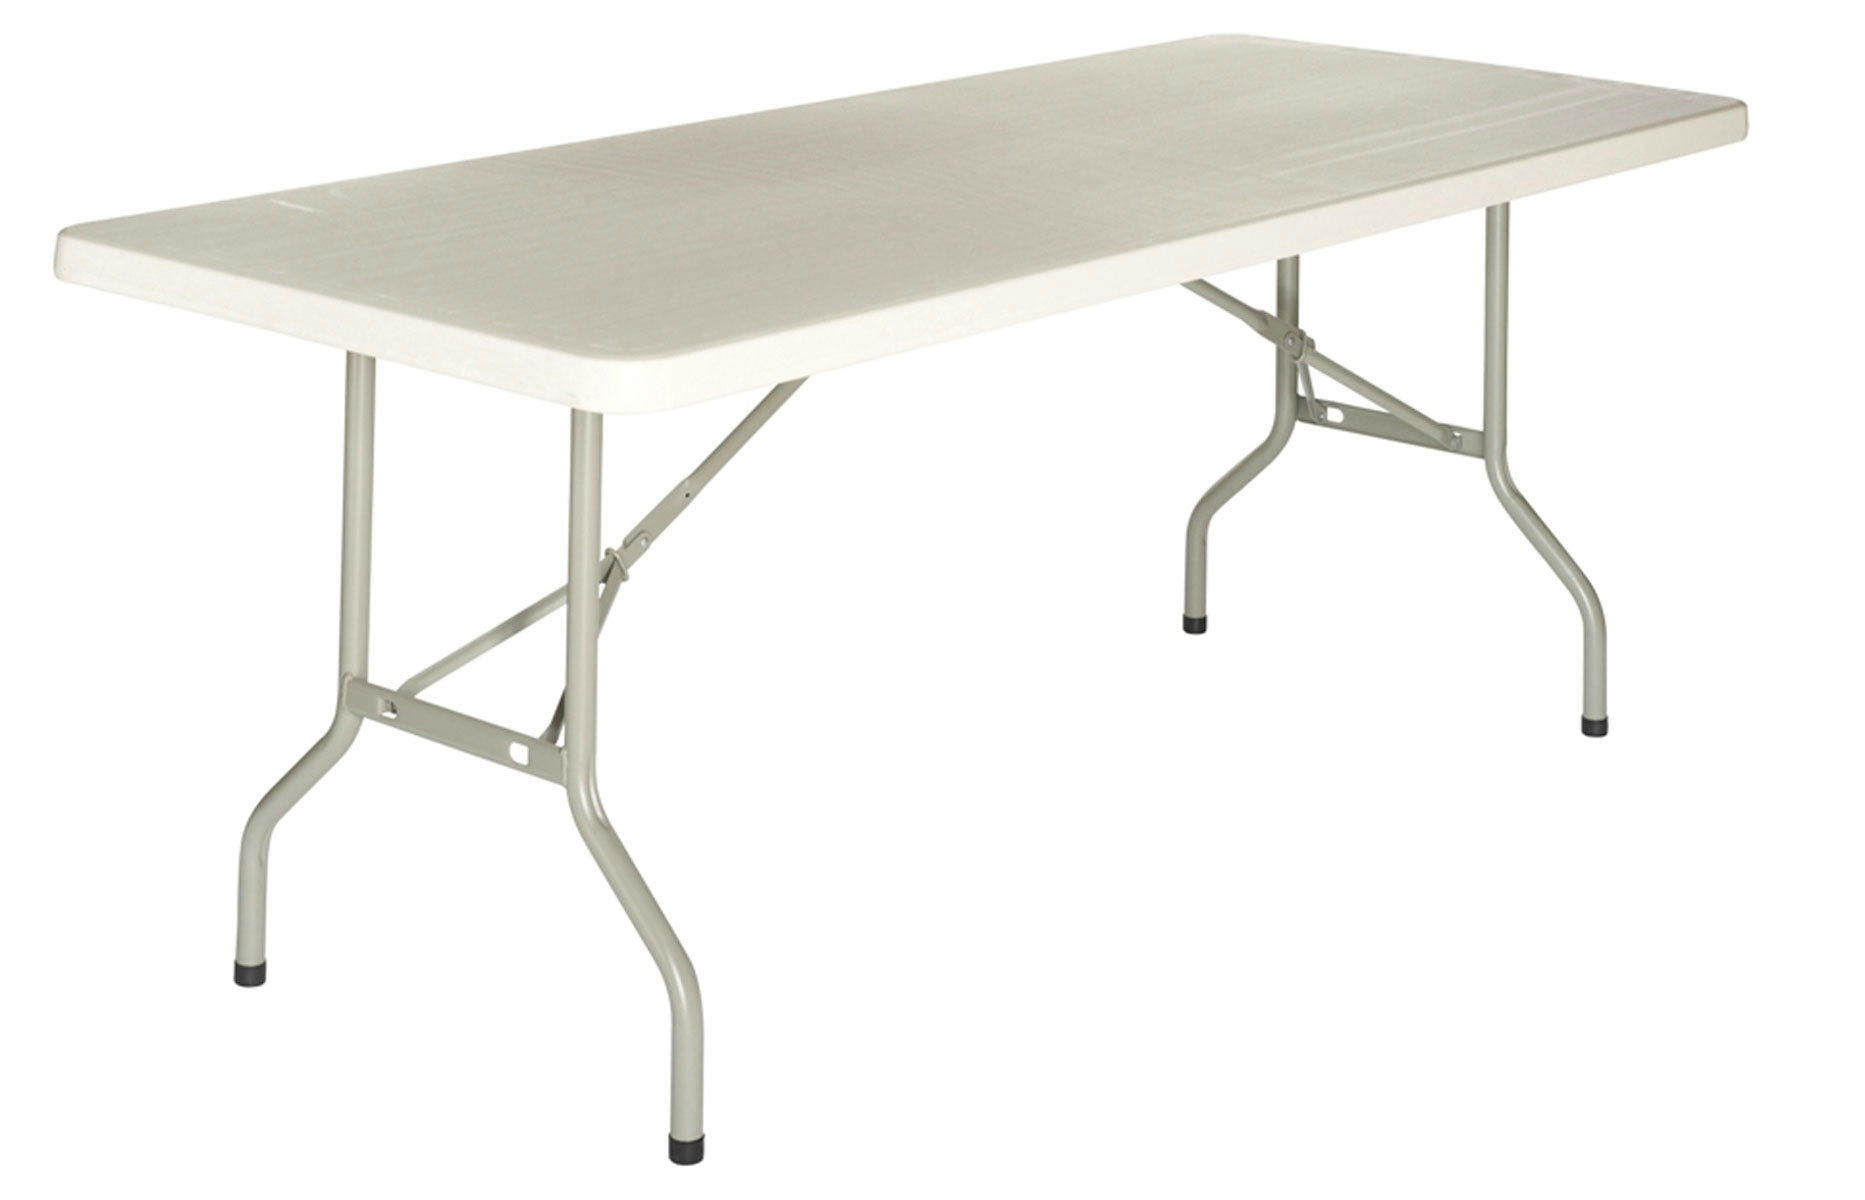 Pied Table Pliant Table De Jardin Pliante Transportable